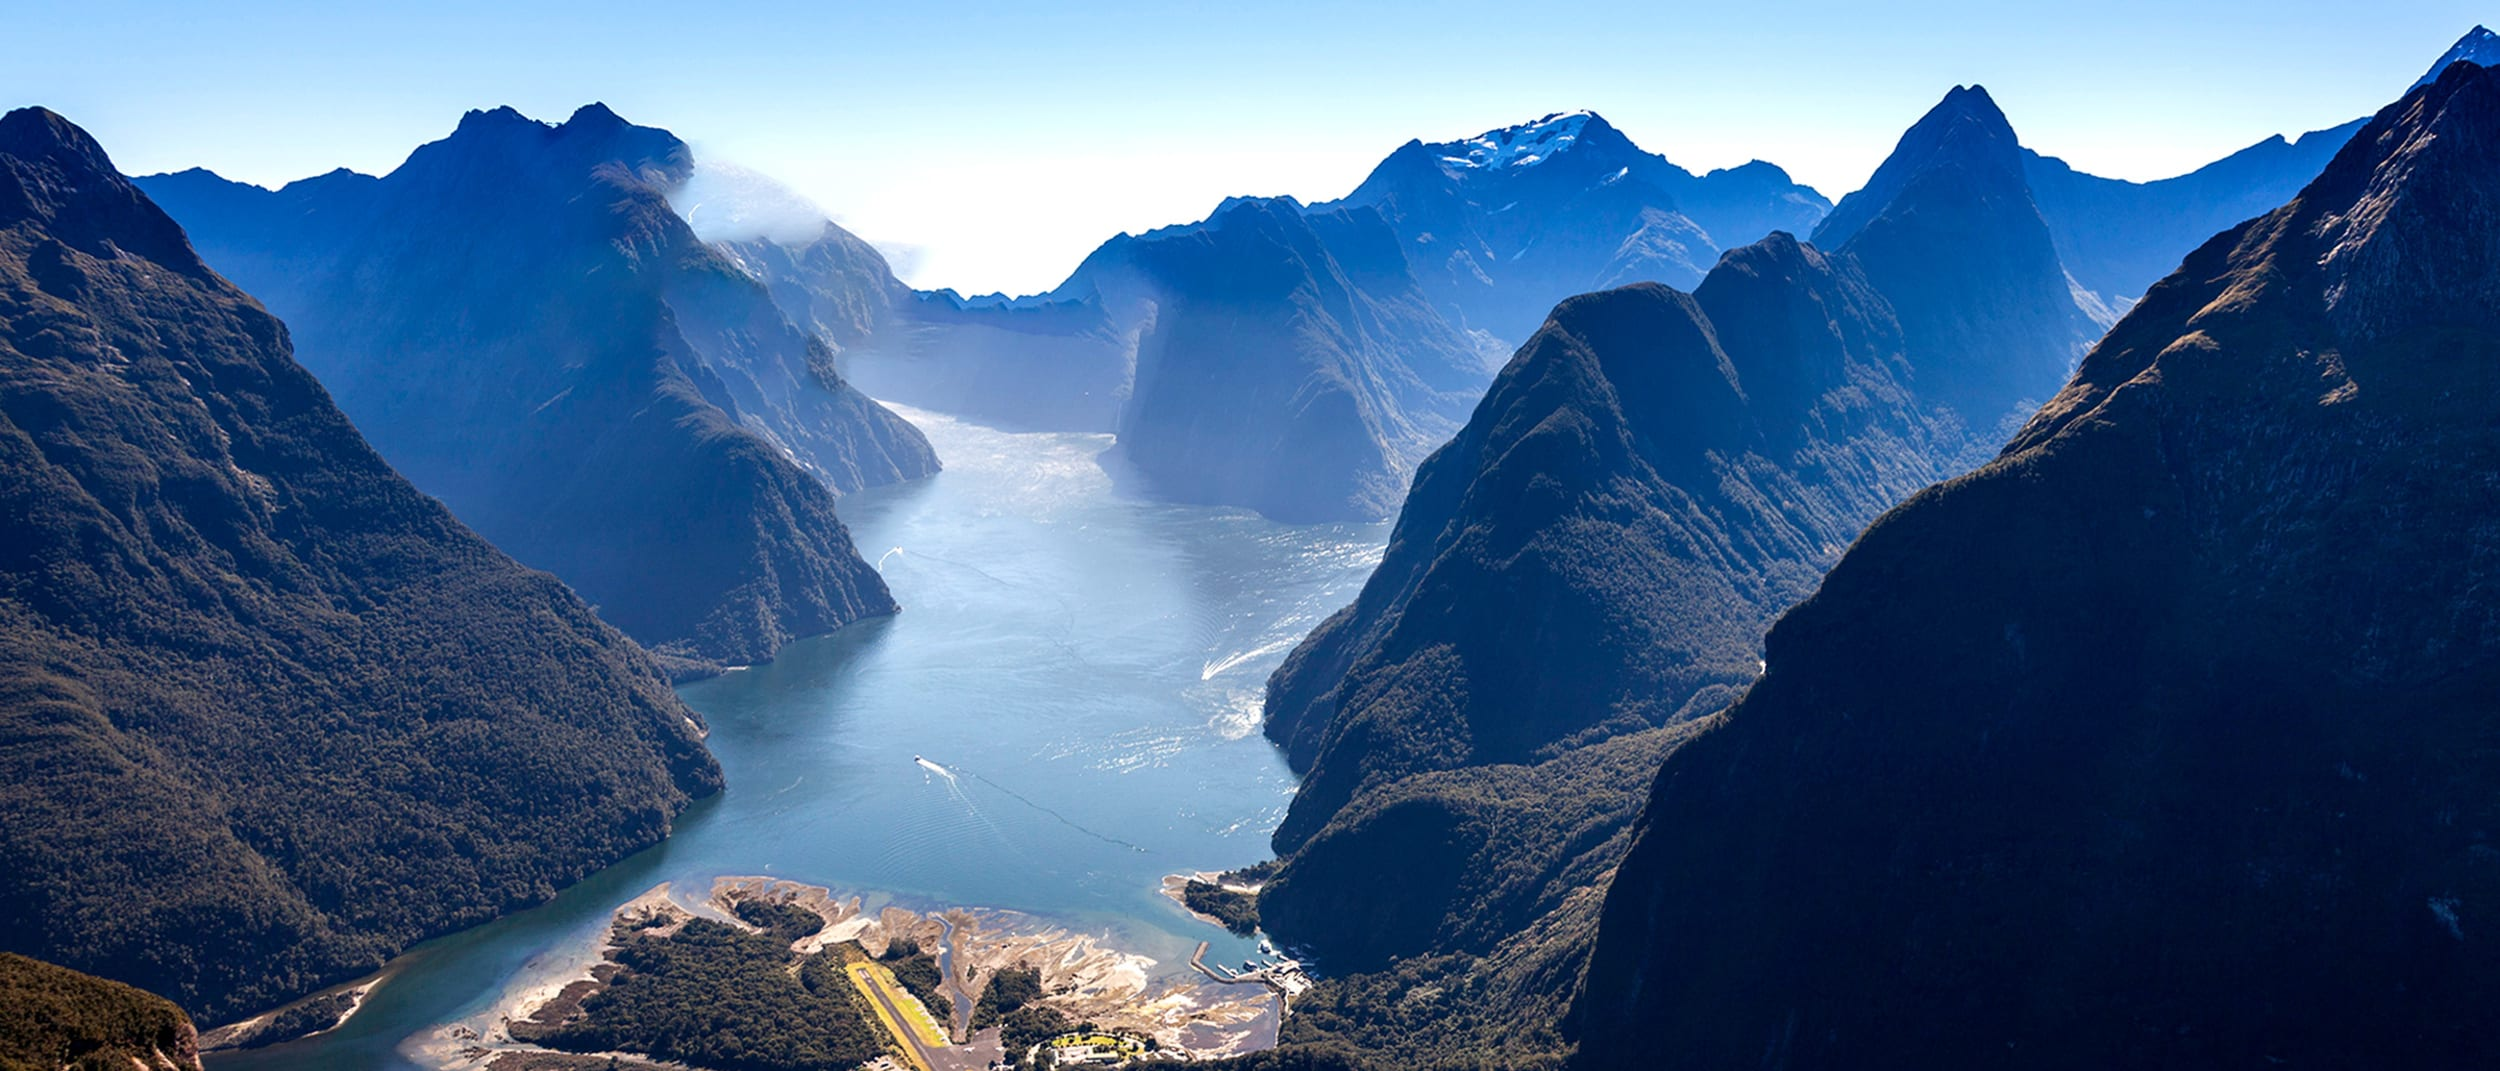 OmniTech: Be into win a scenic flight for two to Milford Sound*